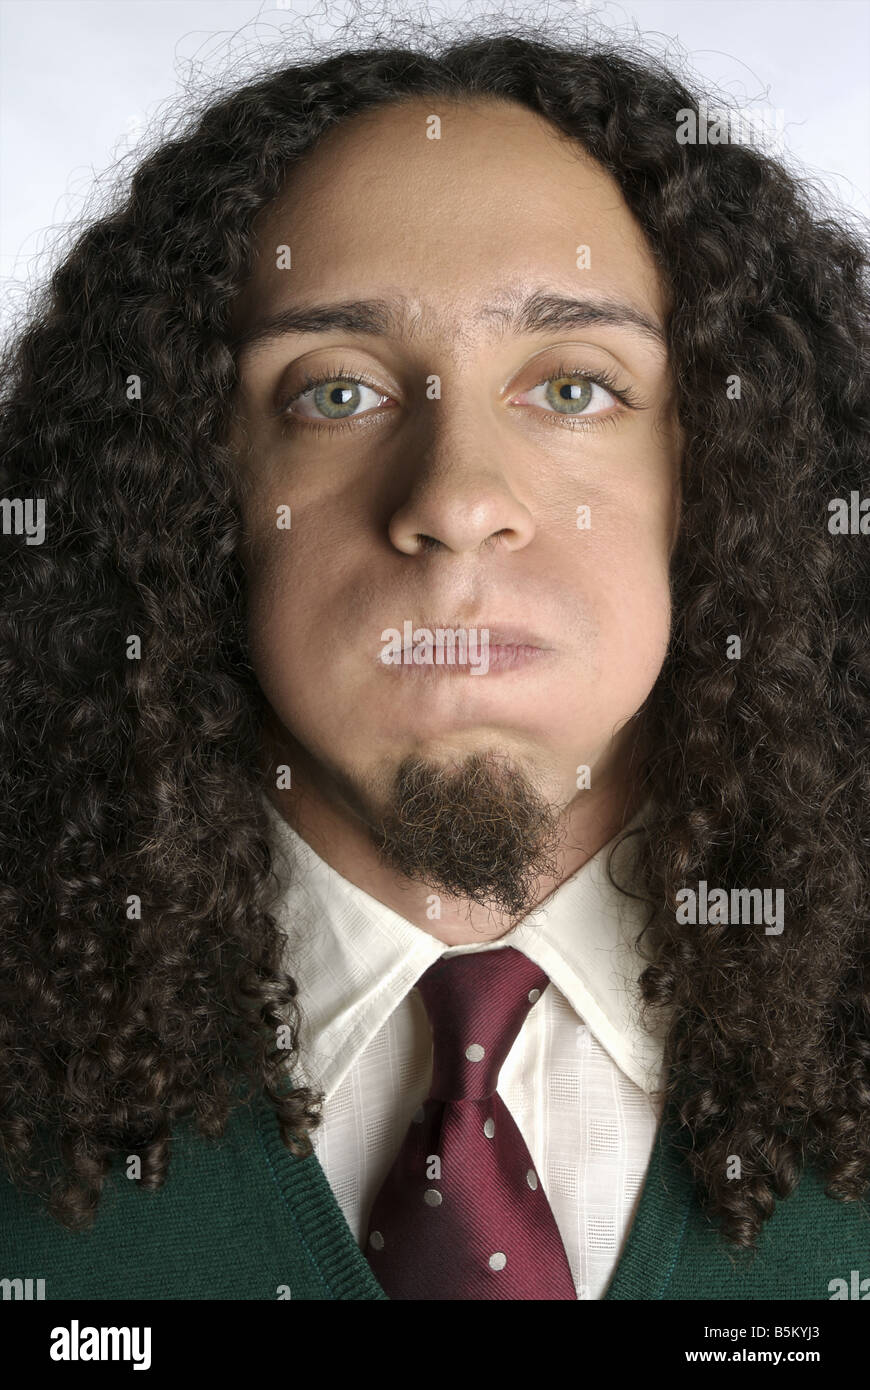 Shaggy haired man in formal attire. - Stock Image